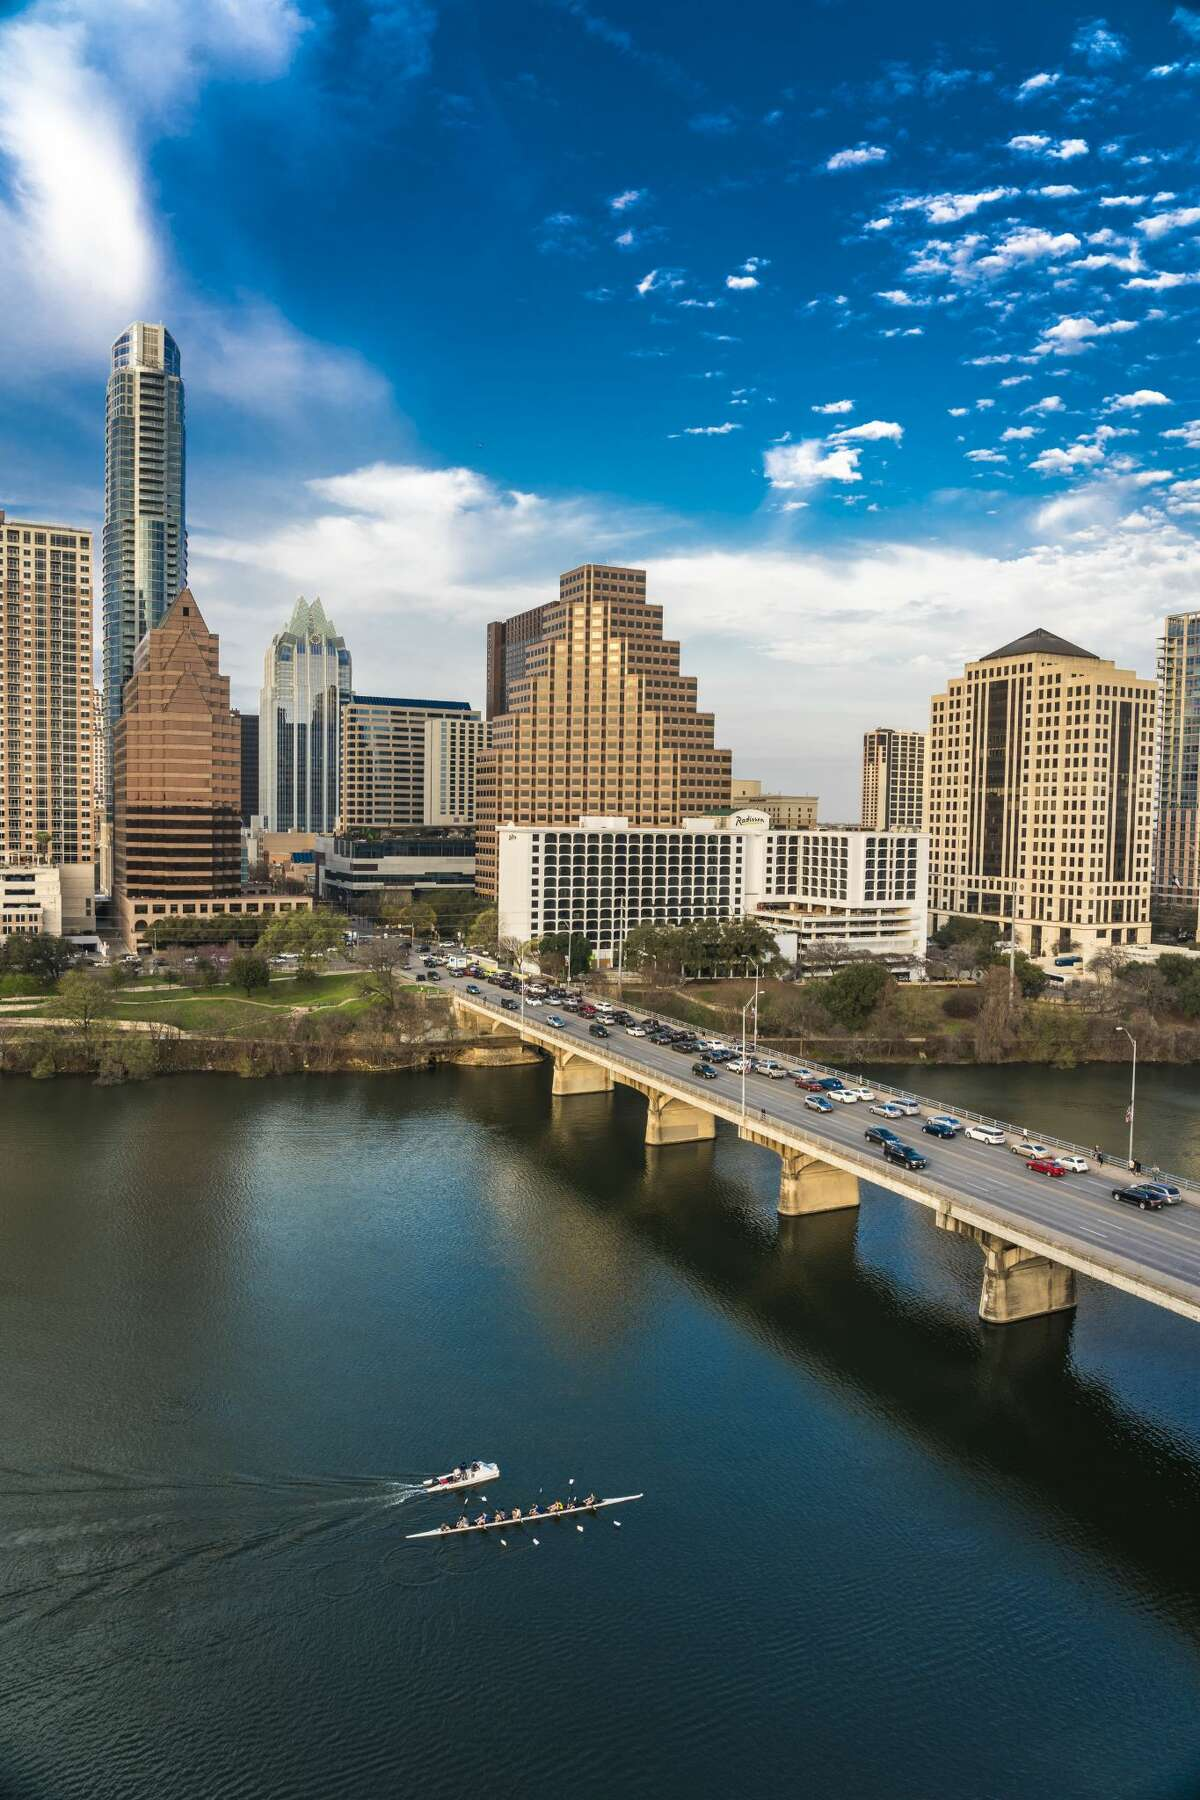 Austin ranked at No. 38 for the second year in a row.